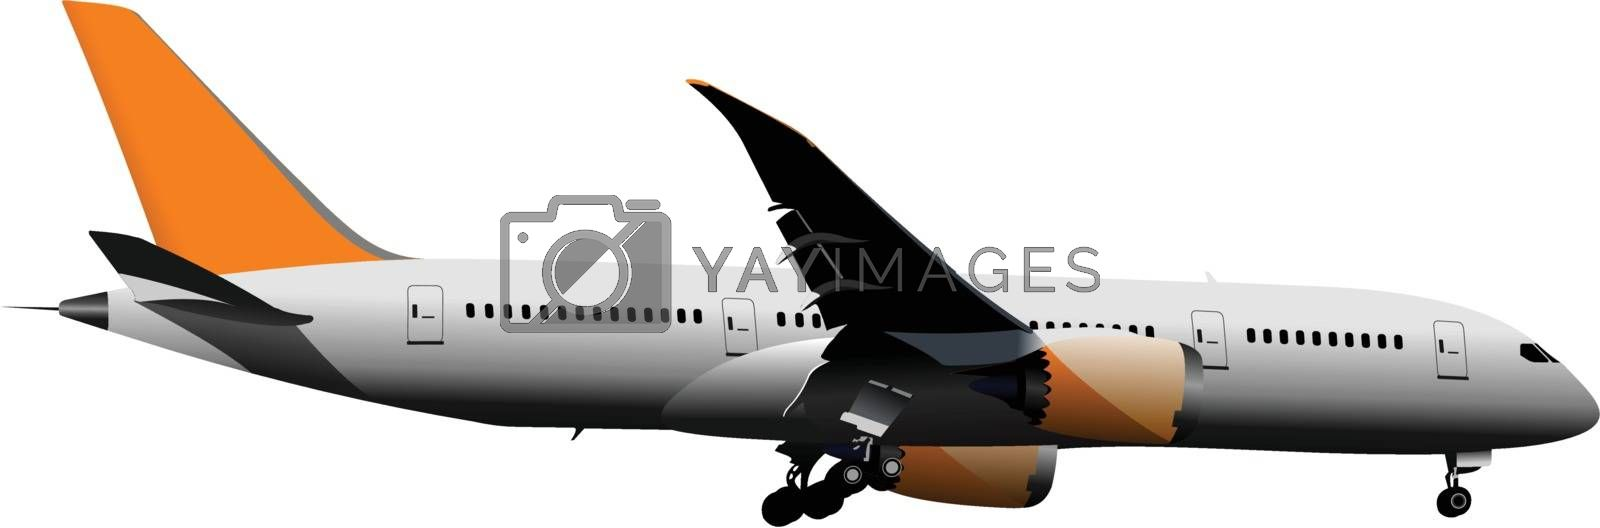 Royalty free image of Airplane on the air. Vector illustration by leonido